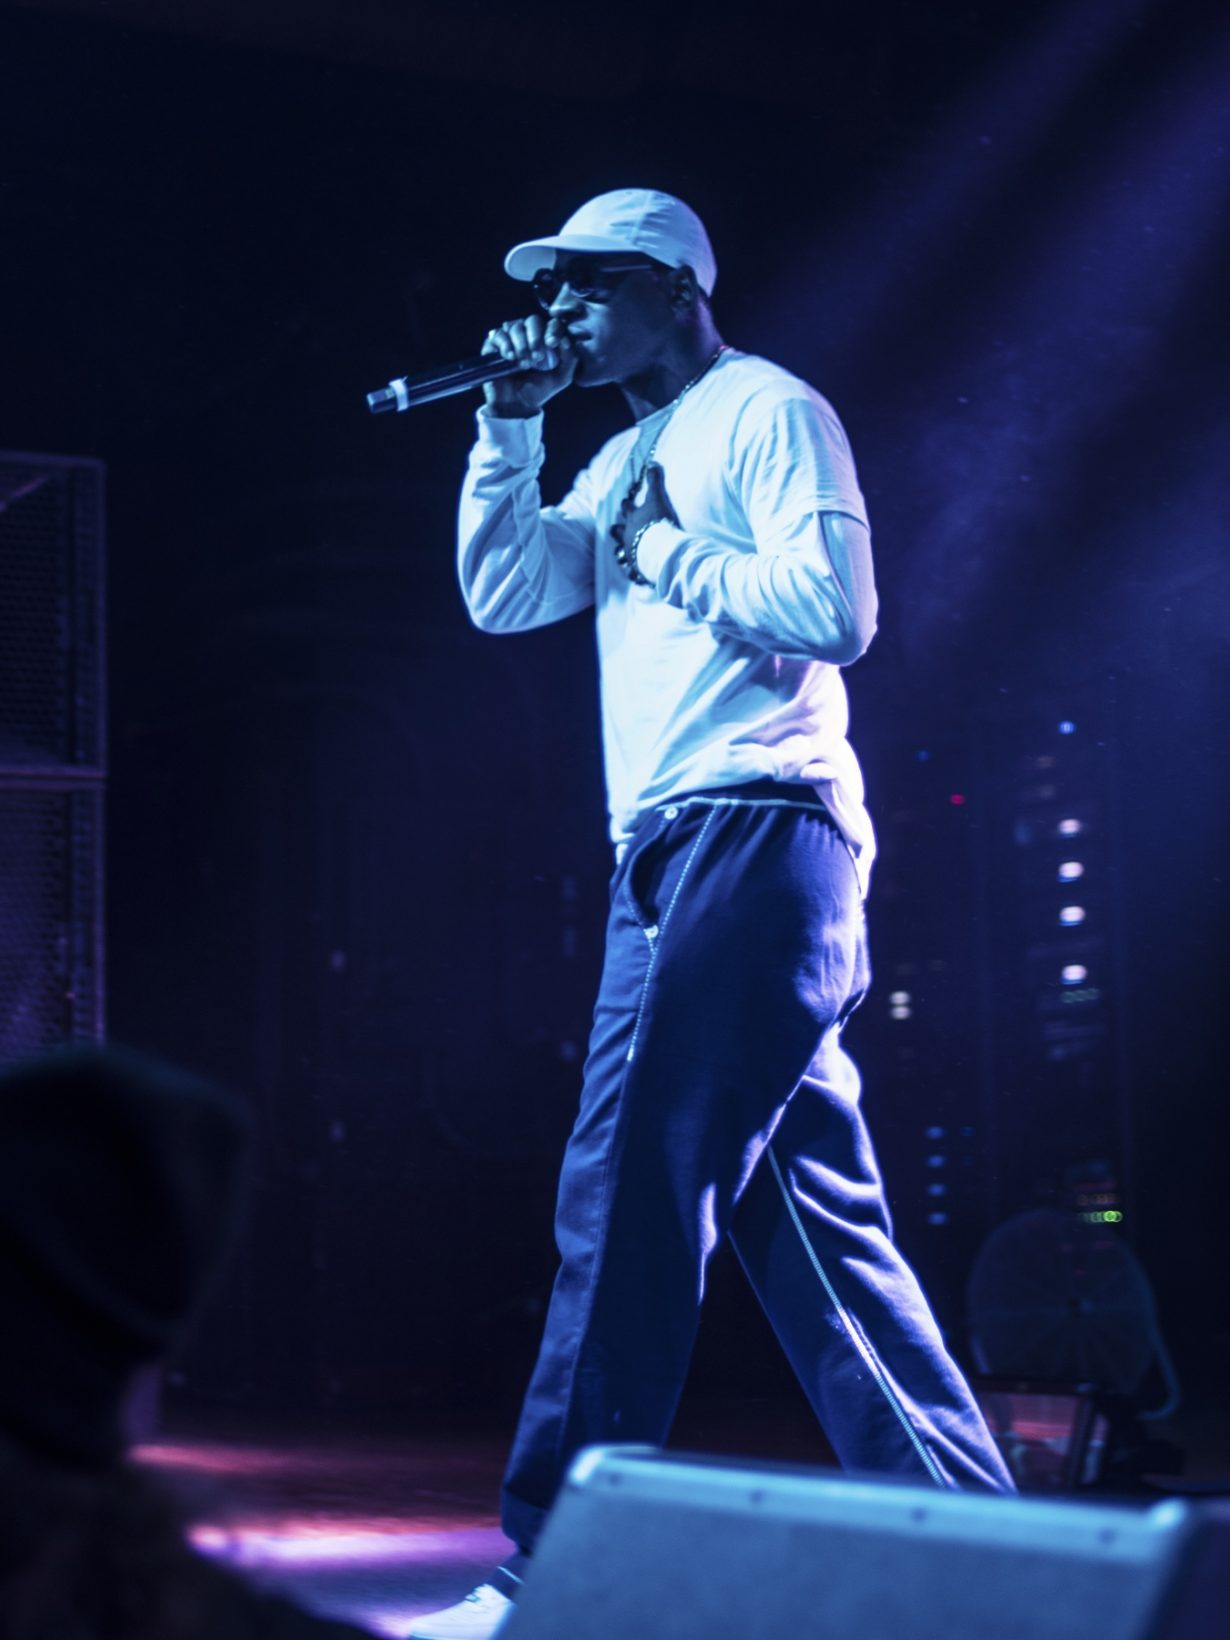 Skepta 4 1230x1640 Skepta Banned From America Tour hit Concord Music Hall with lasting memories